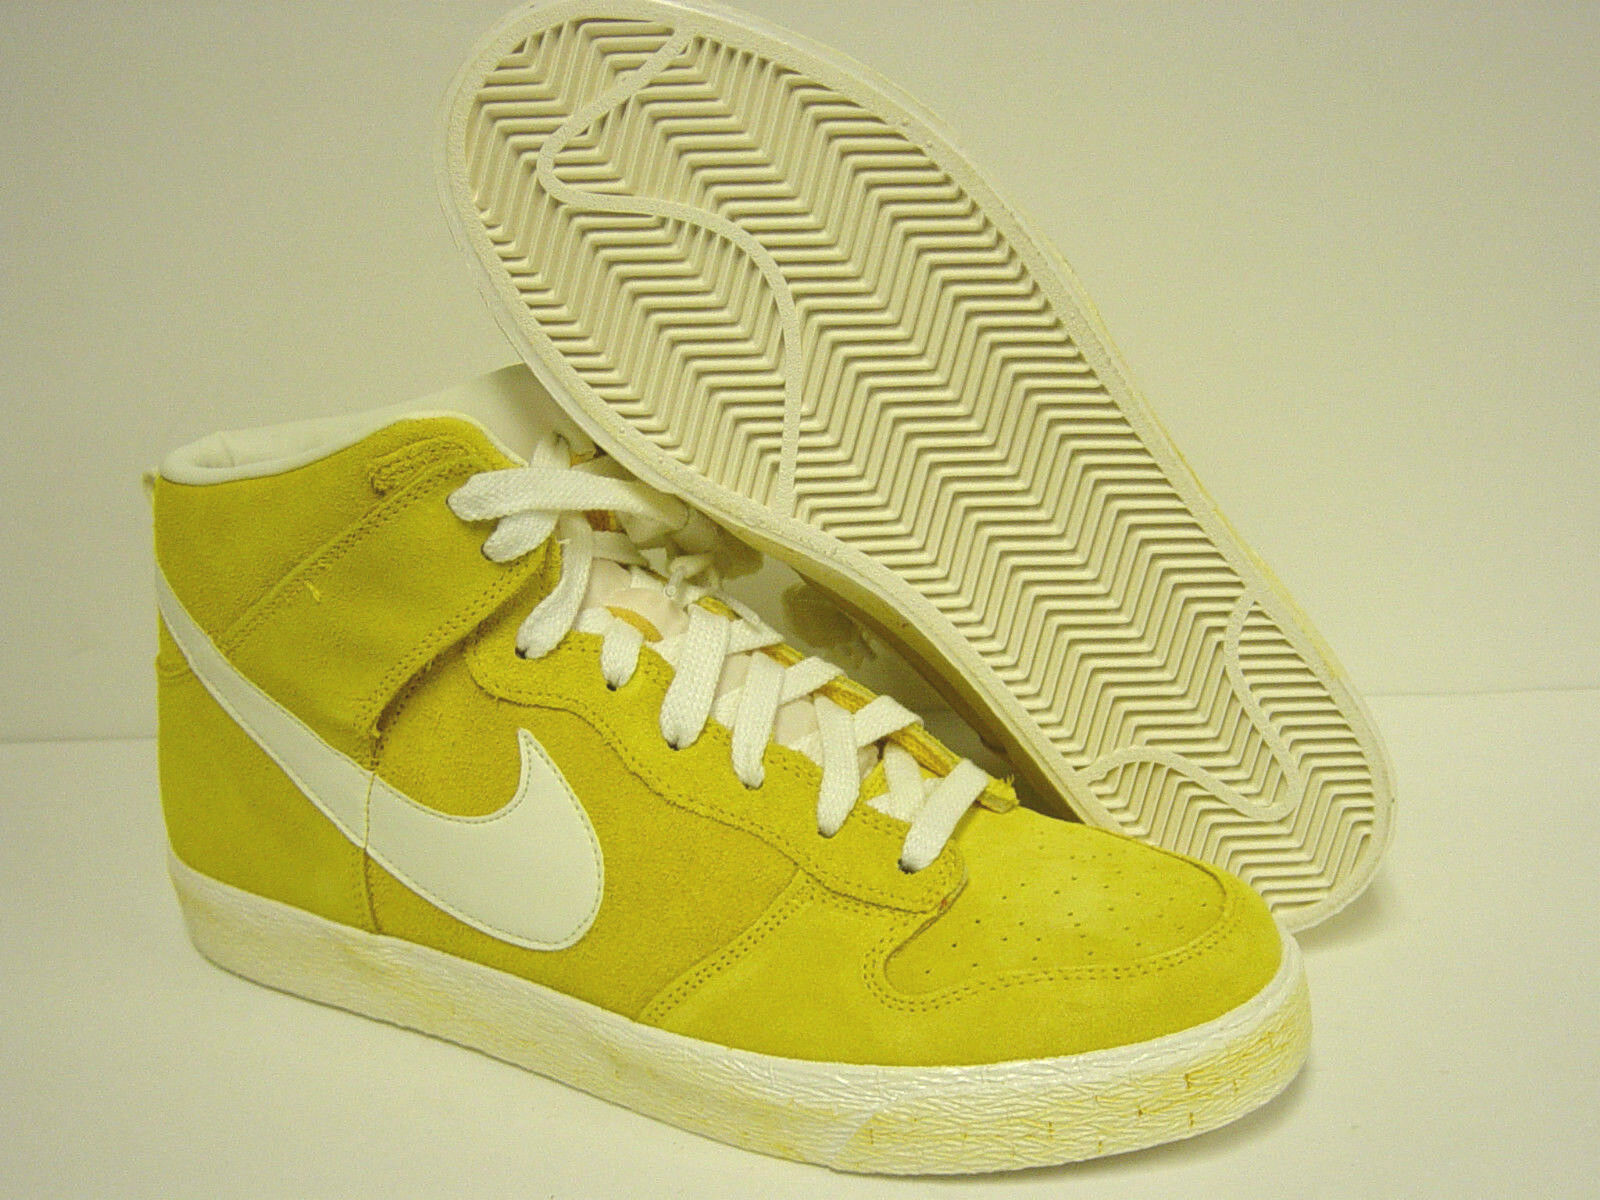 b292ca5d524 NEW Mens NIKE DUNK High AC AC AC 398263 700 MAIZE Yellow Sneakers Shoes  Deadstock Rare